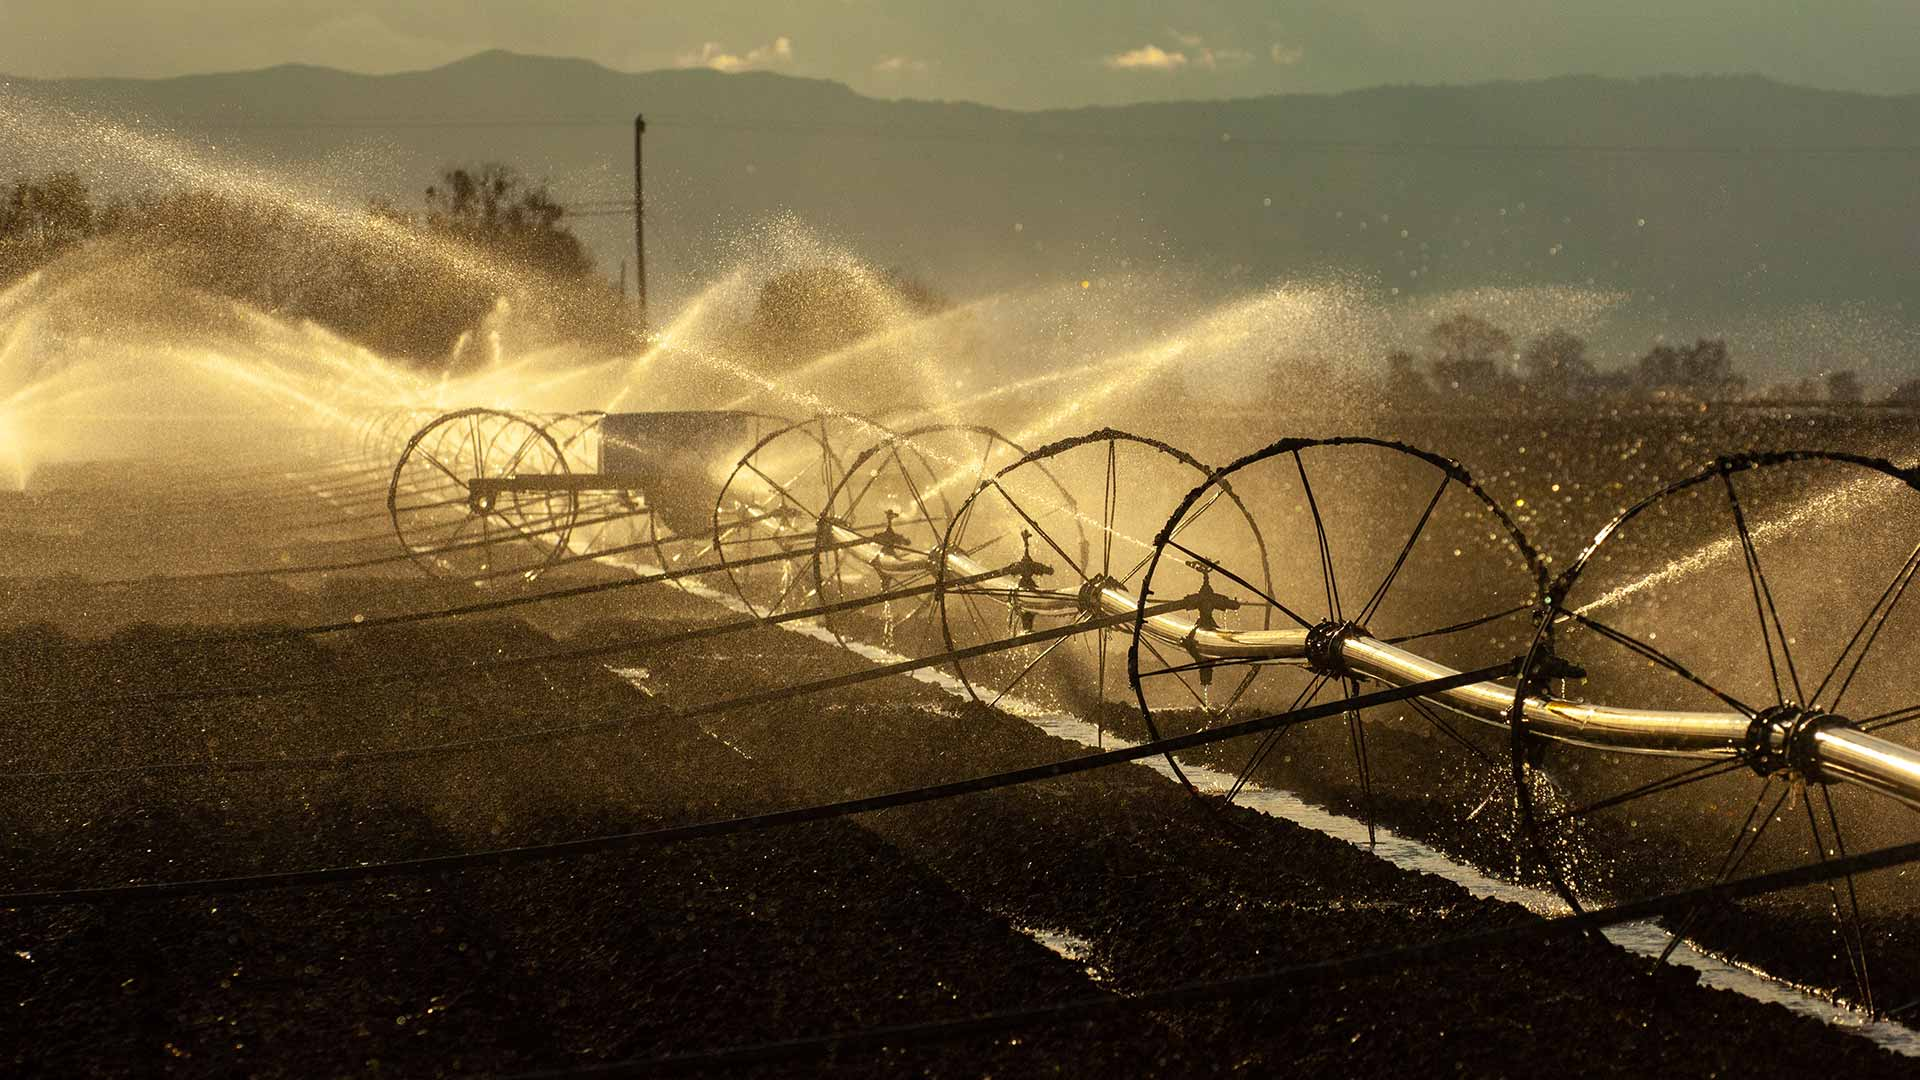 An agricultural field is irrigated with large sprinklers